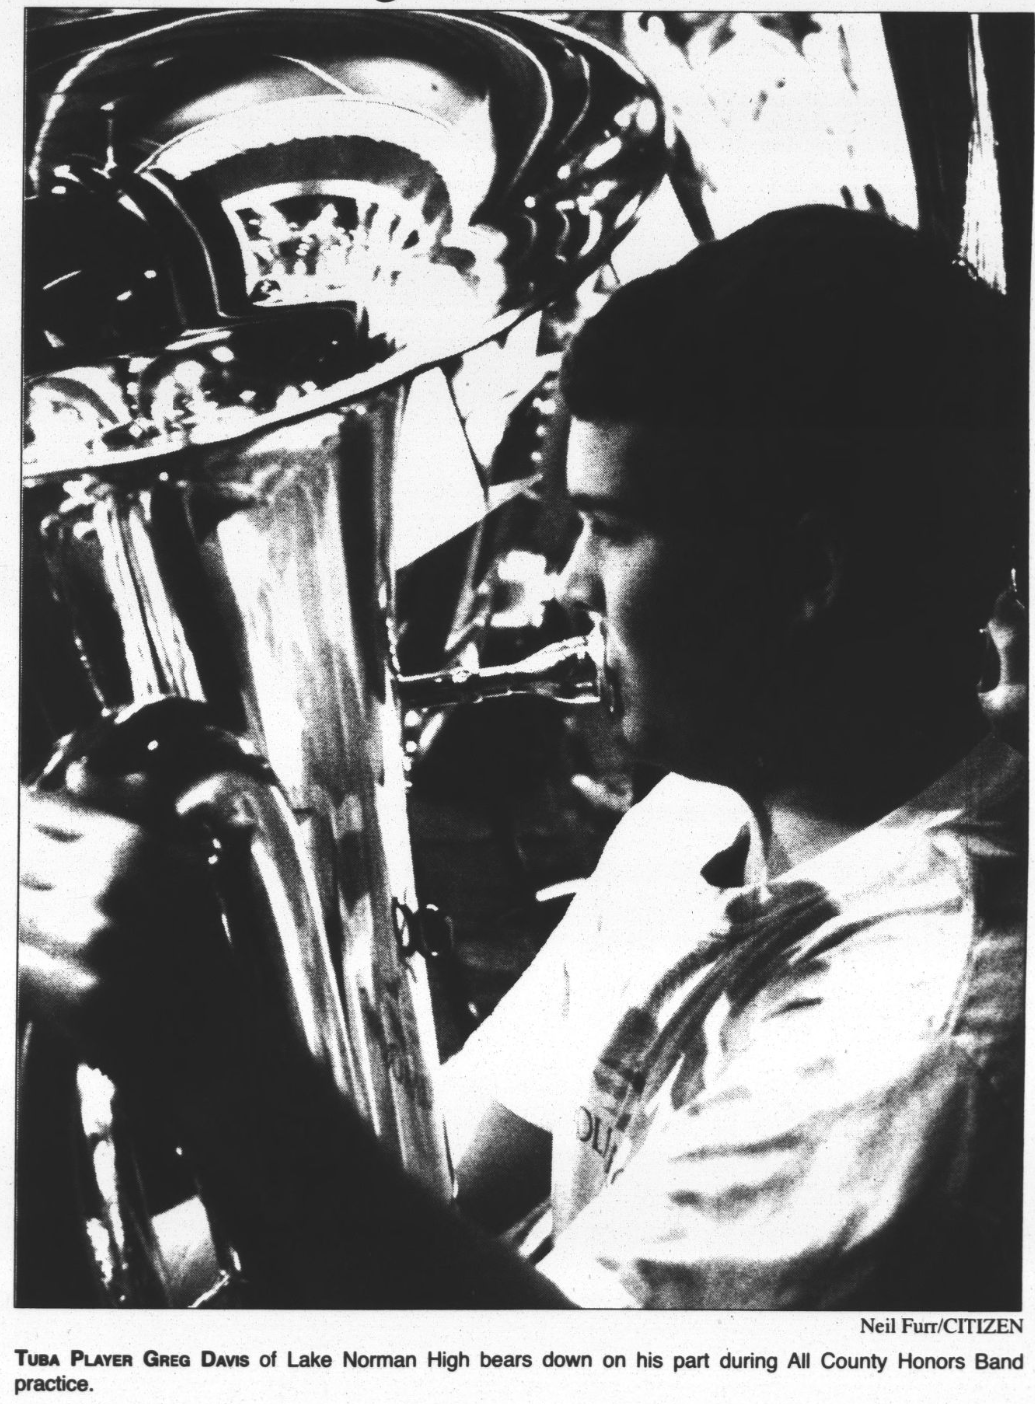 """Photograph of a high school student playing the tuba. The caption under the photo reads, """"Tuba Player Greg Davis of Lake Norman High bears down on his part during All County Honors Band practice. Photo taken by Neil Furr."""